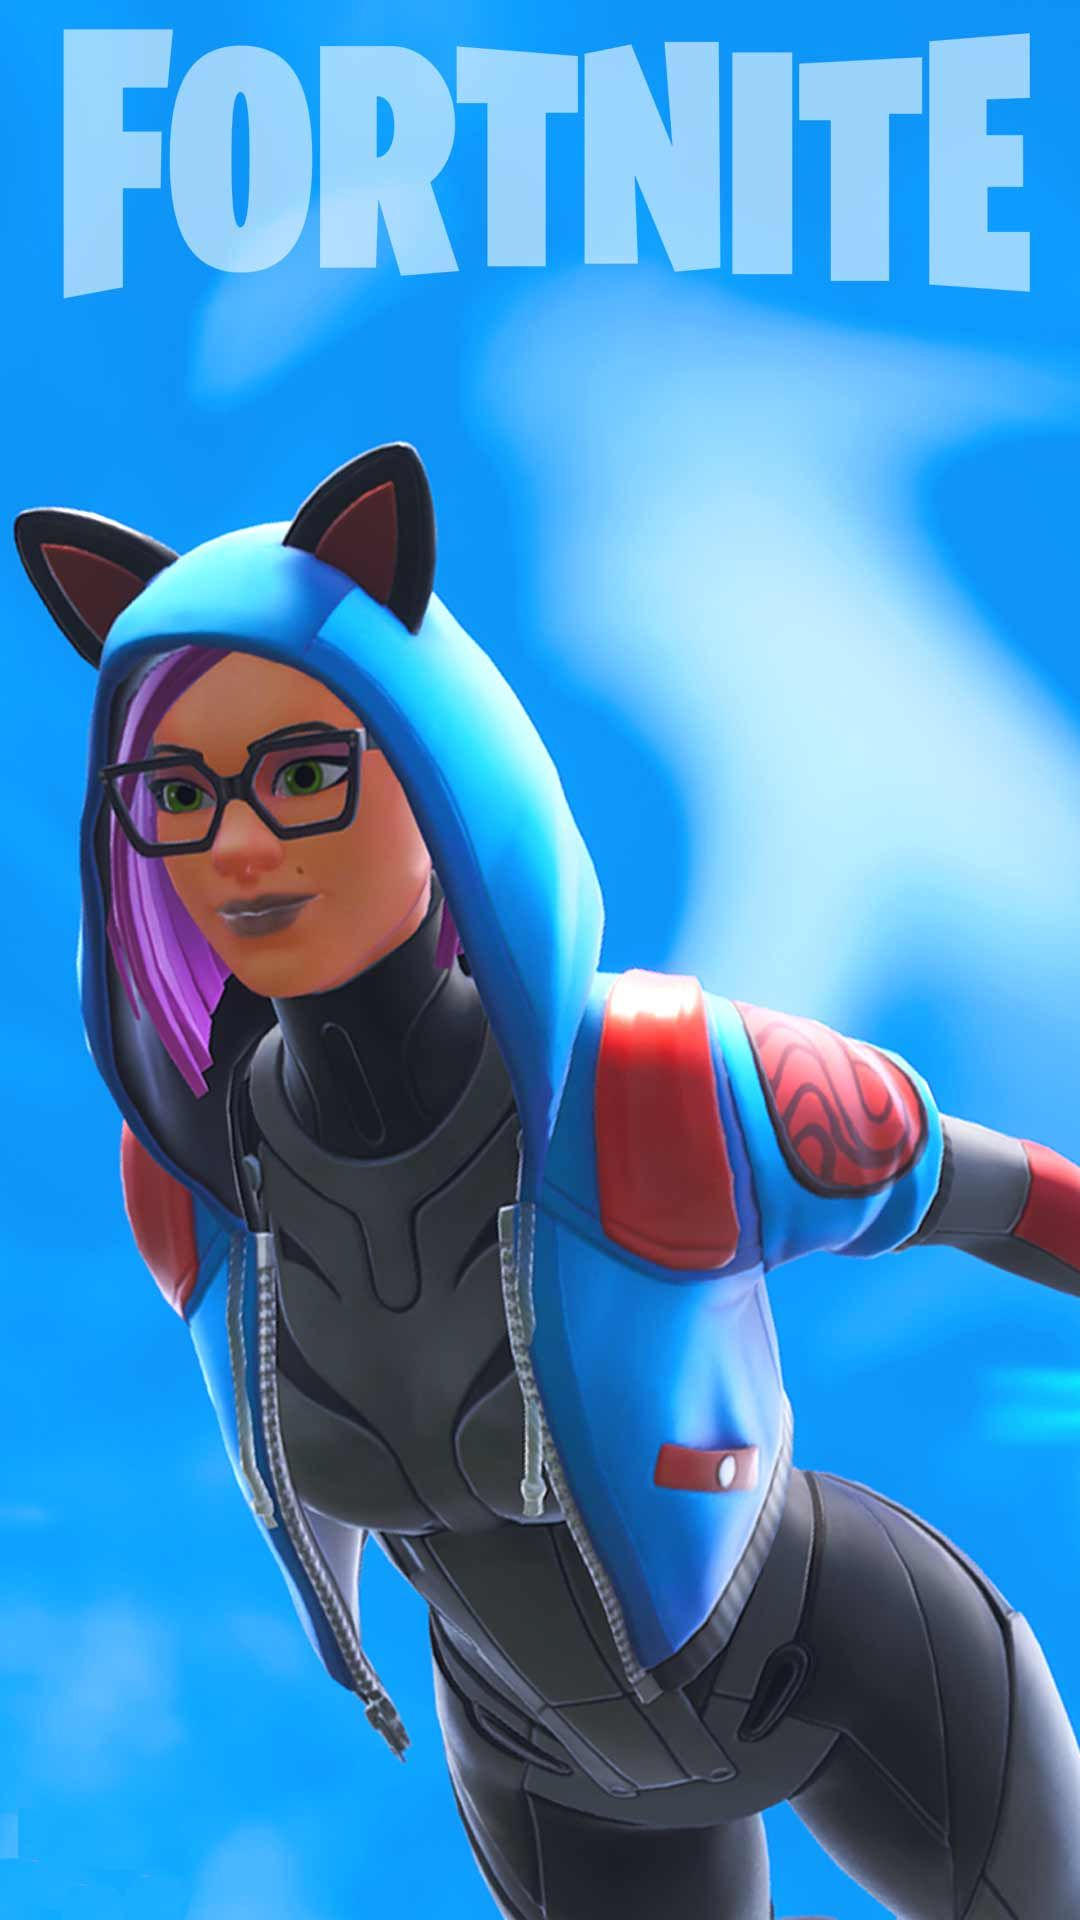 Lynx Fortnite Skin Wallpaper Hd Phone Backgrounds Art Poster Download For Iphone Android Home Screen In 2020 Fortnite Ragdoll Cat Cat Drawing